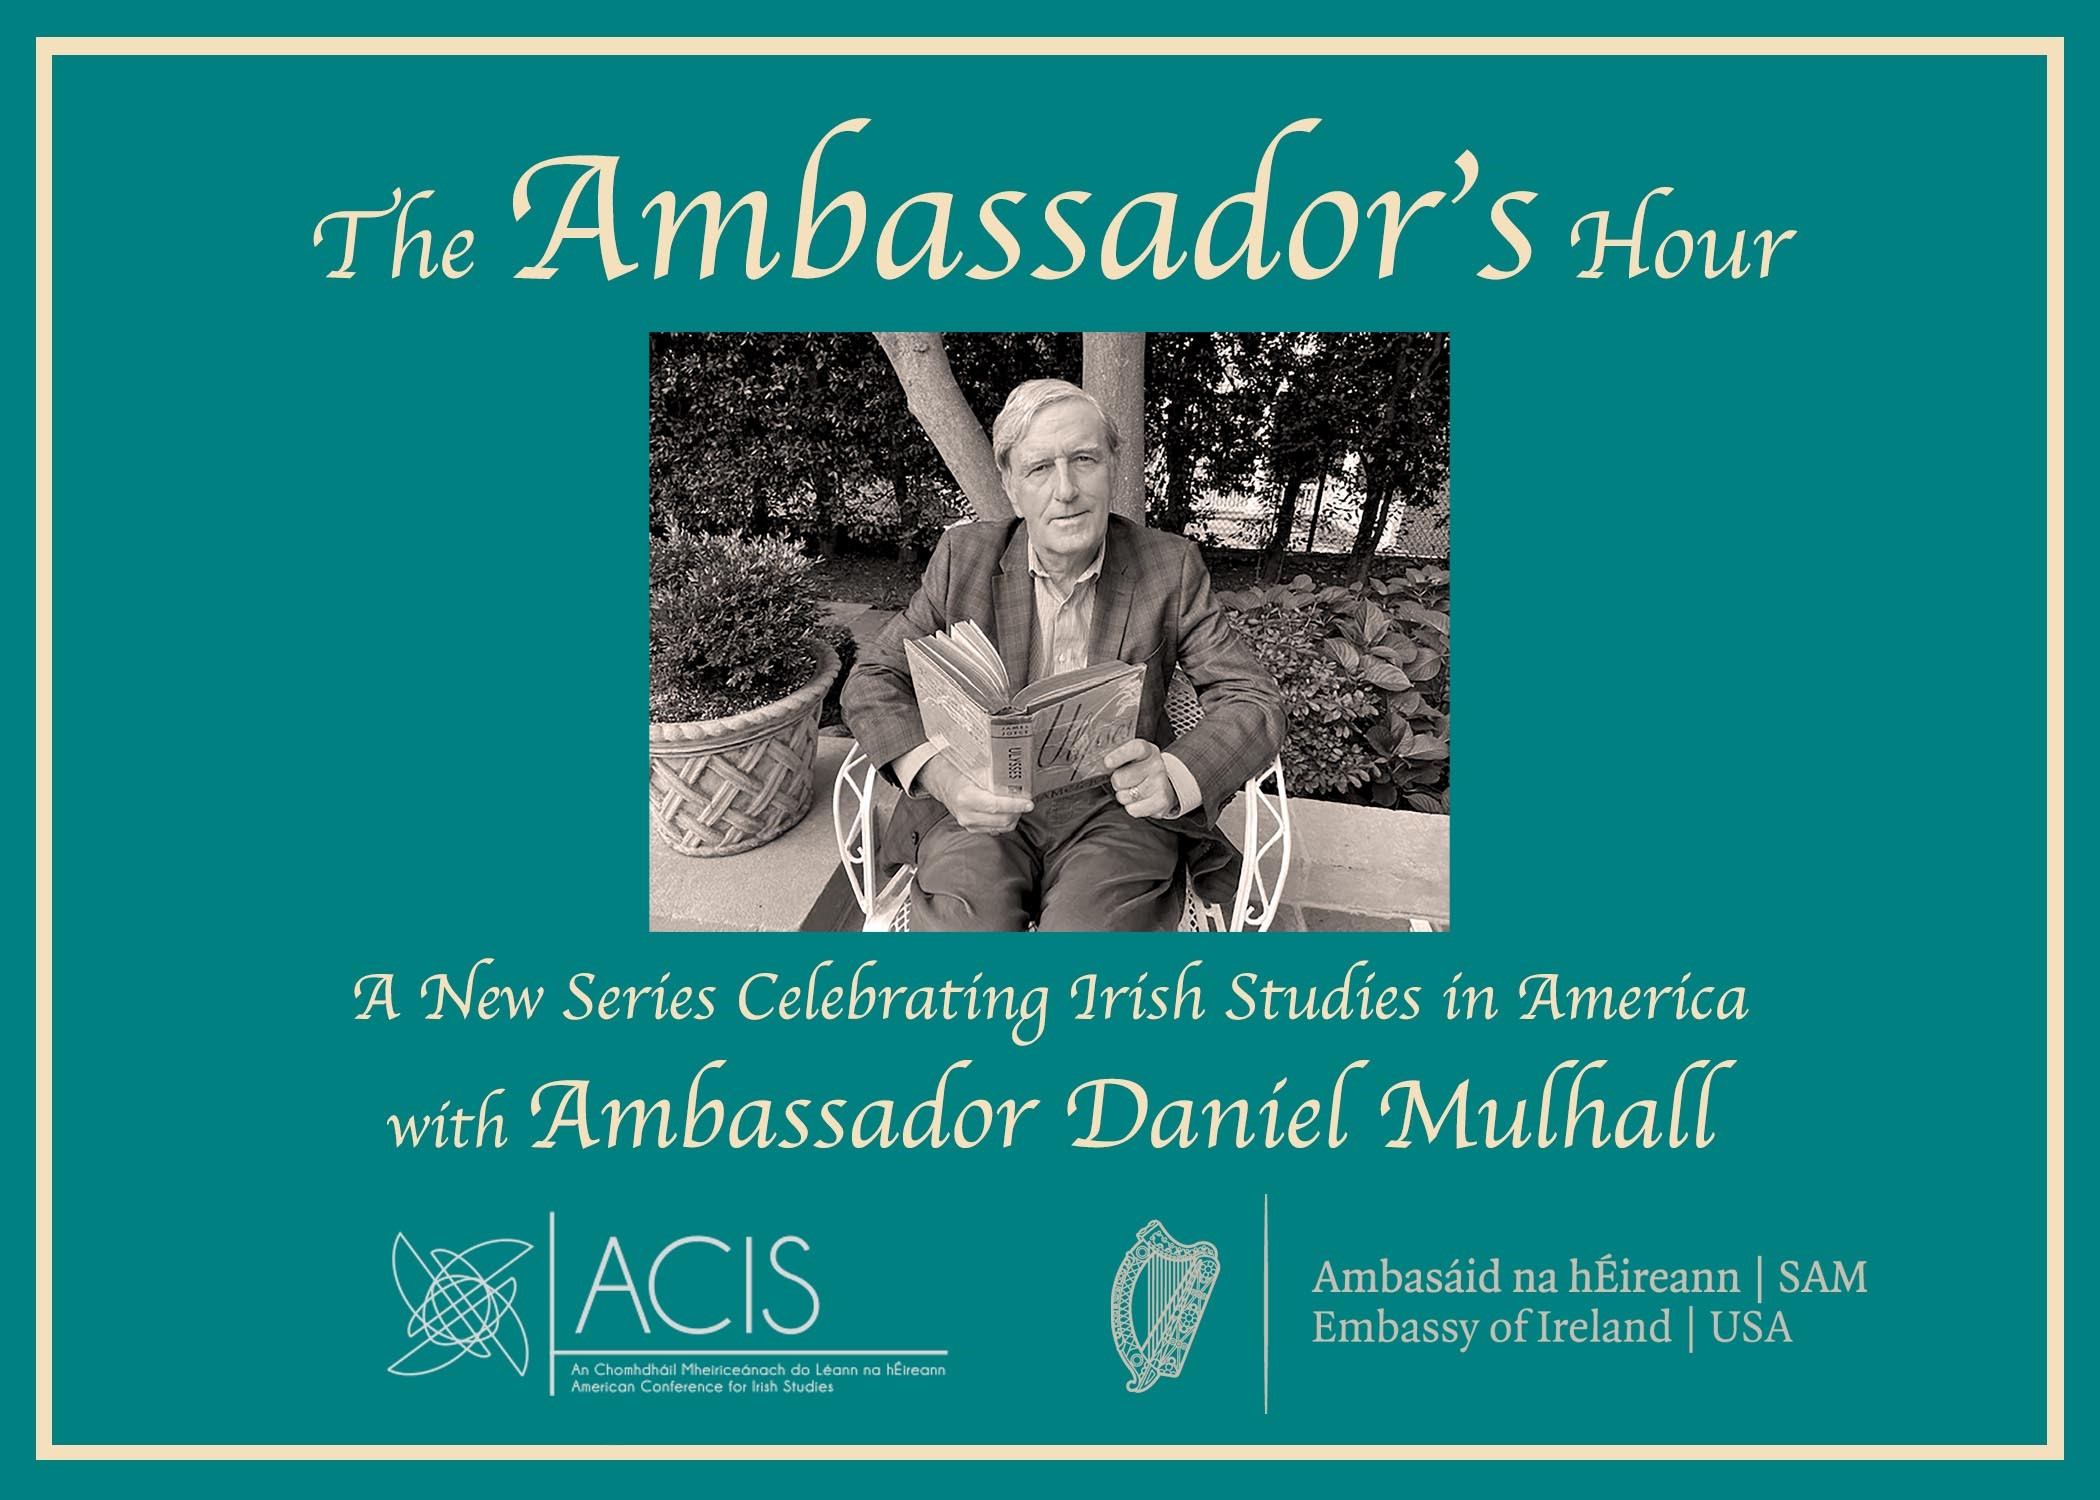 The Ambassador's Hour: Celebrating Irish Studies in America